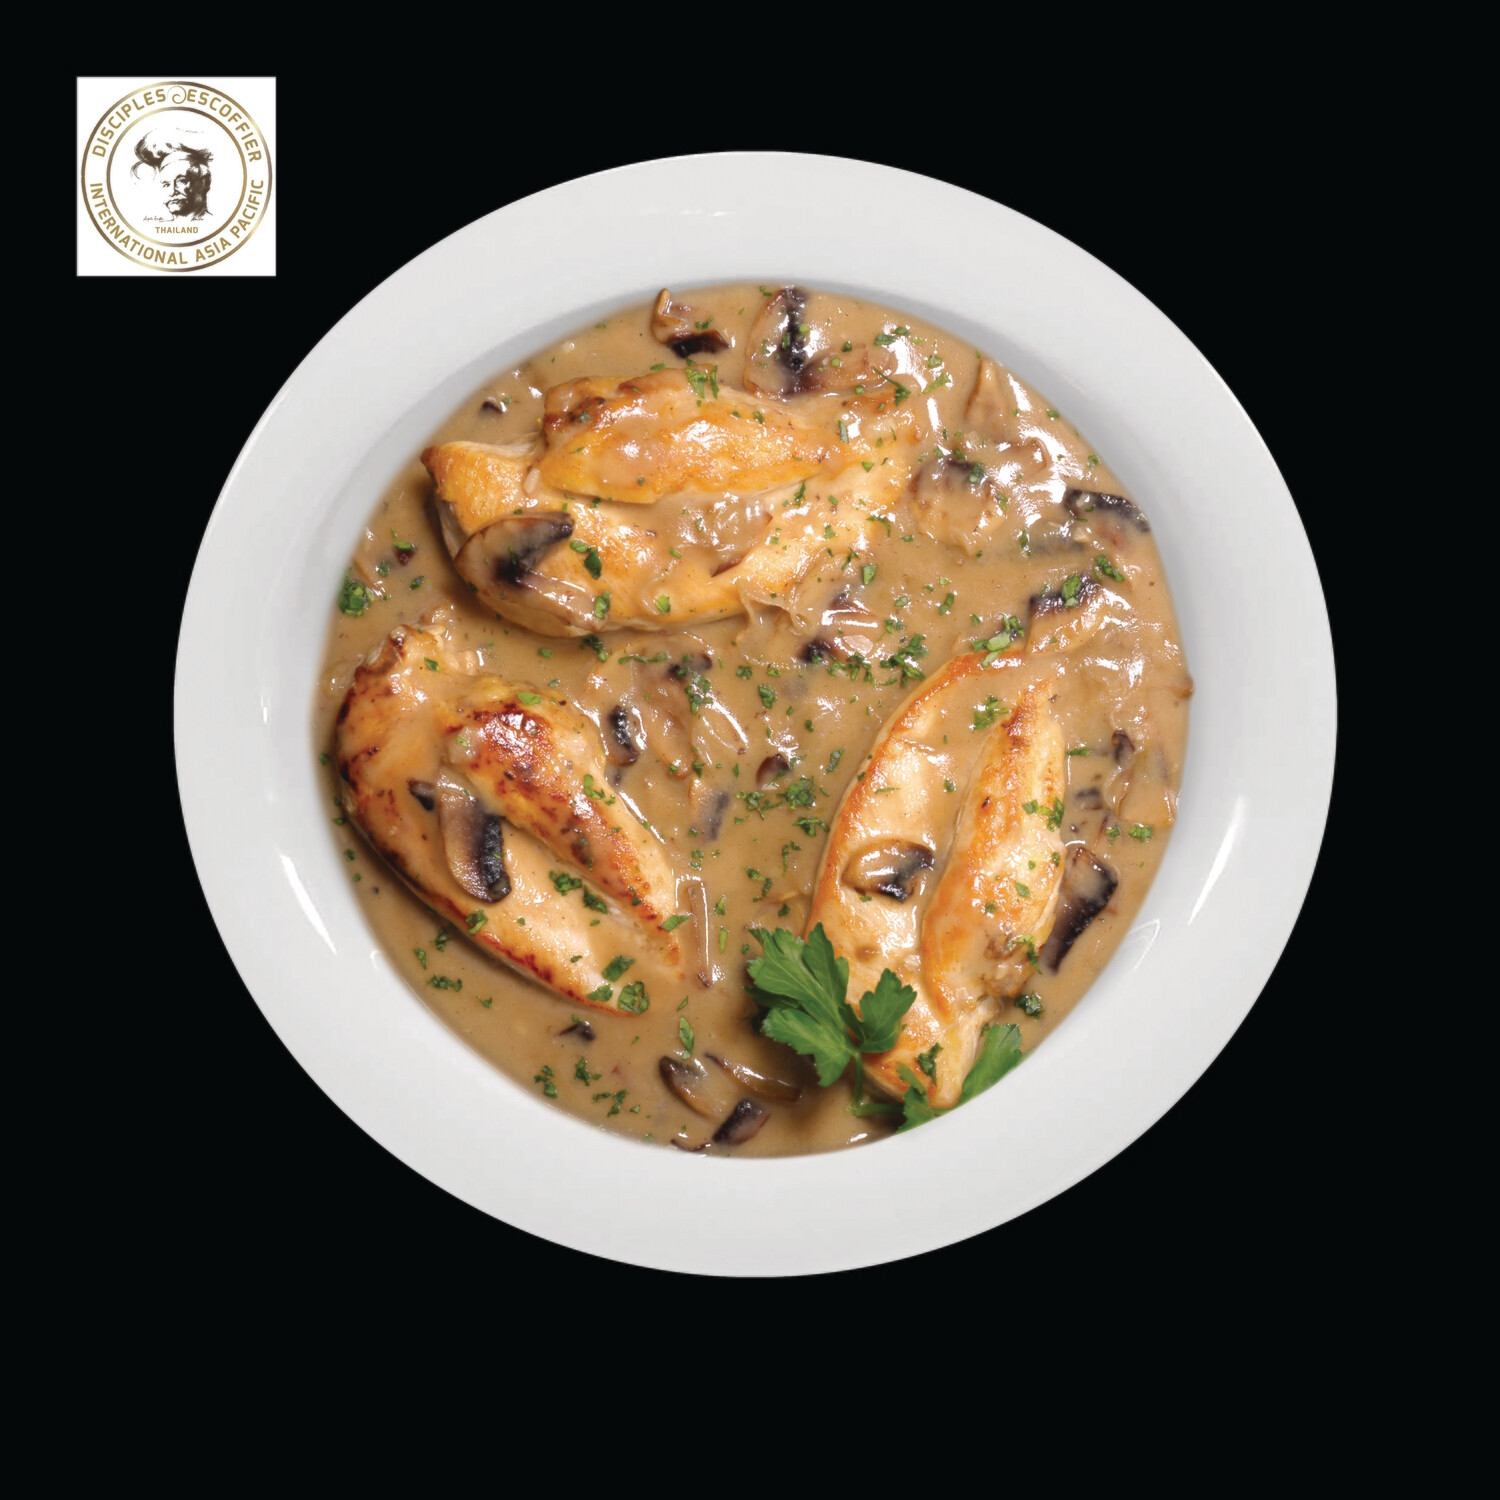 CANARD SAUCE FORETIERE (duck in mushroom sauce) 1 PORTION deep-frozen